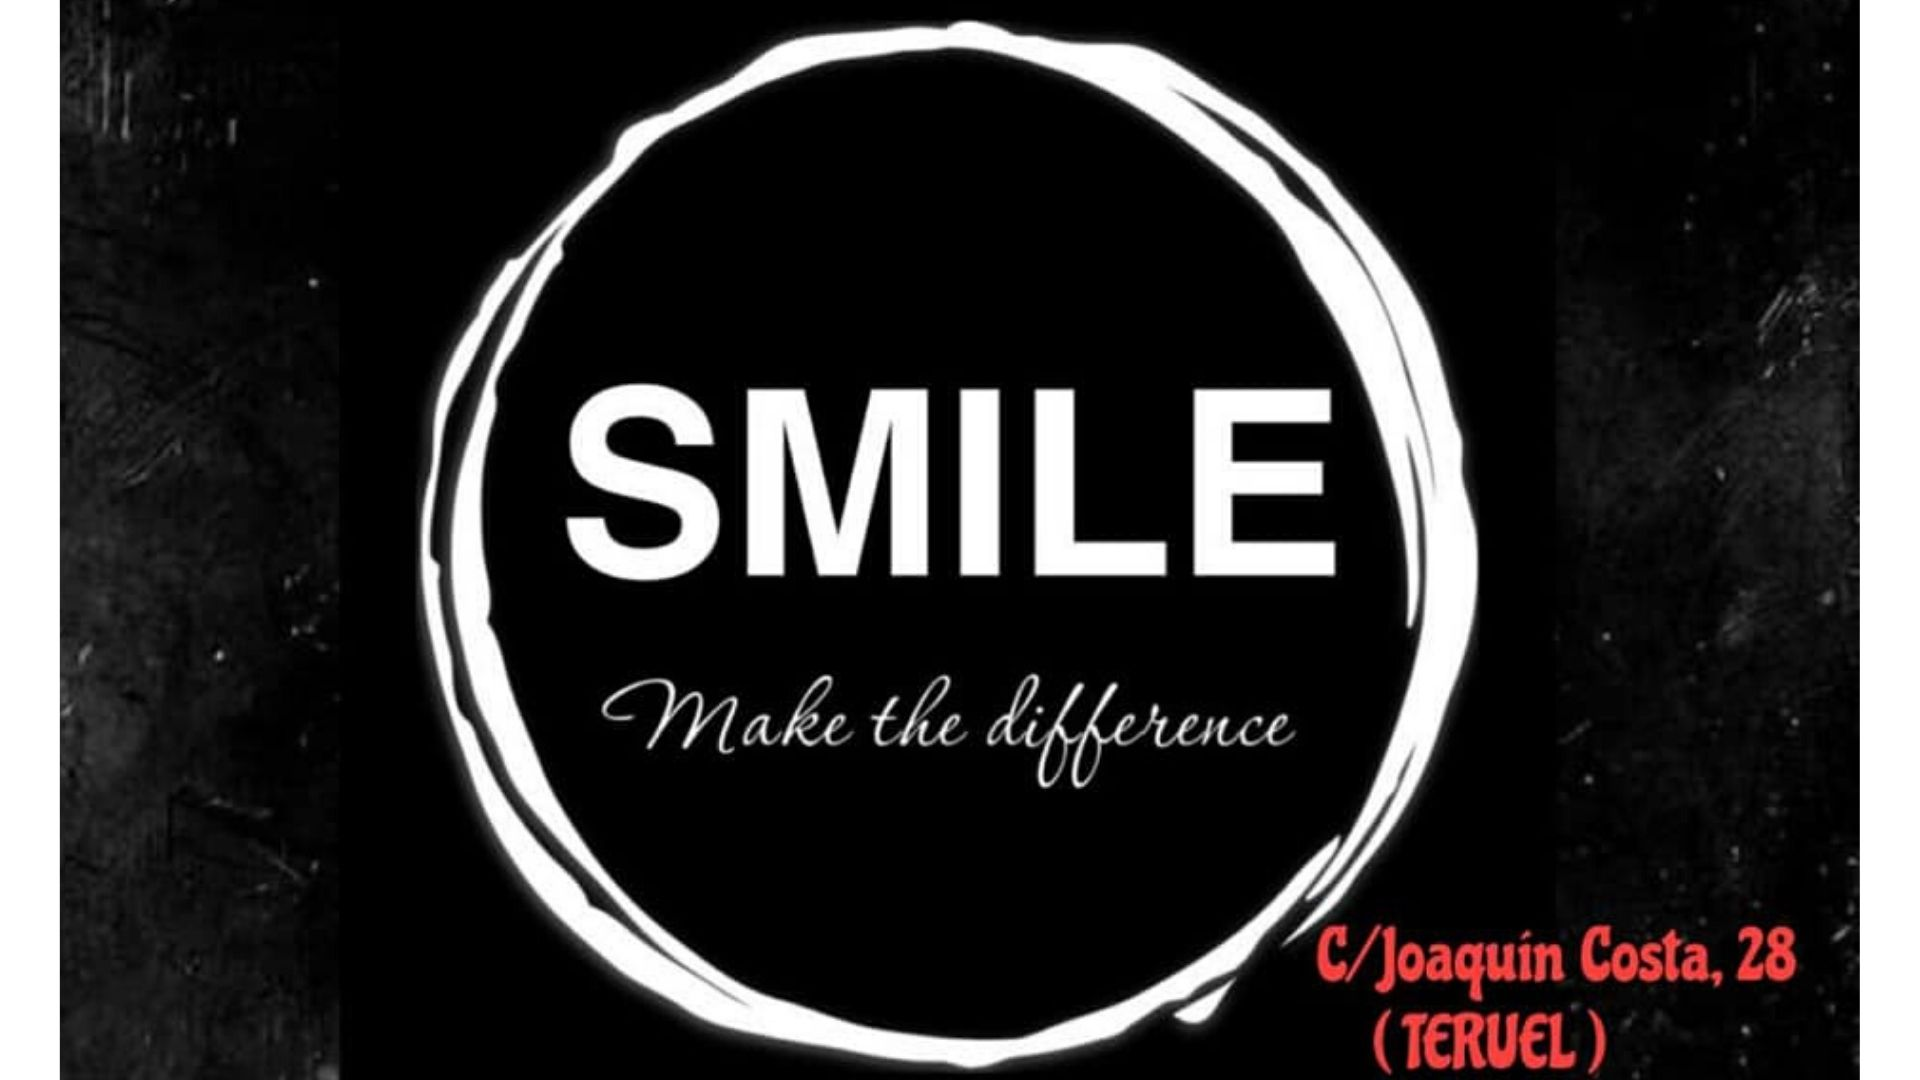 Smile make the difference